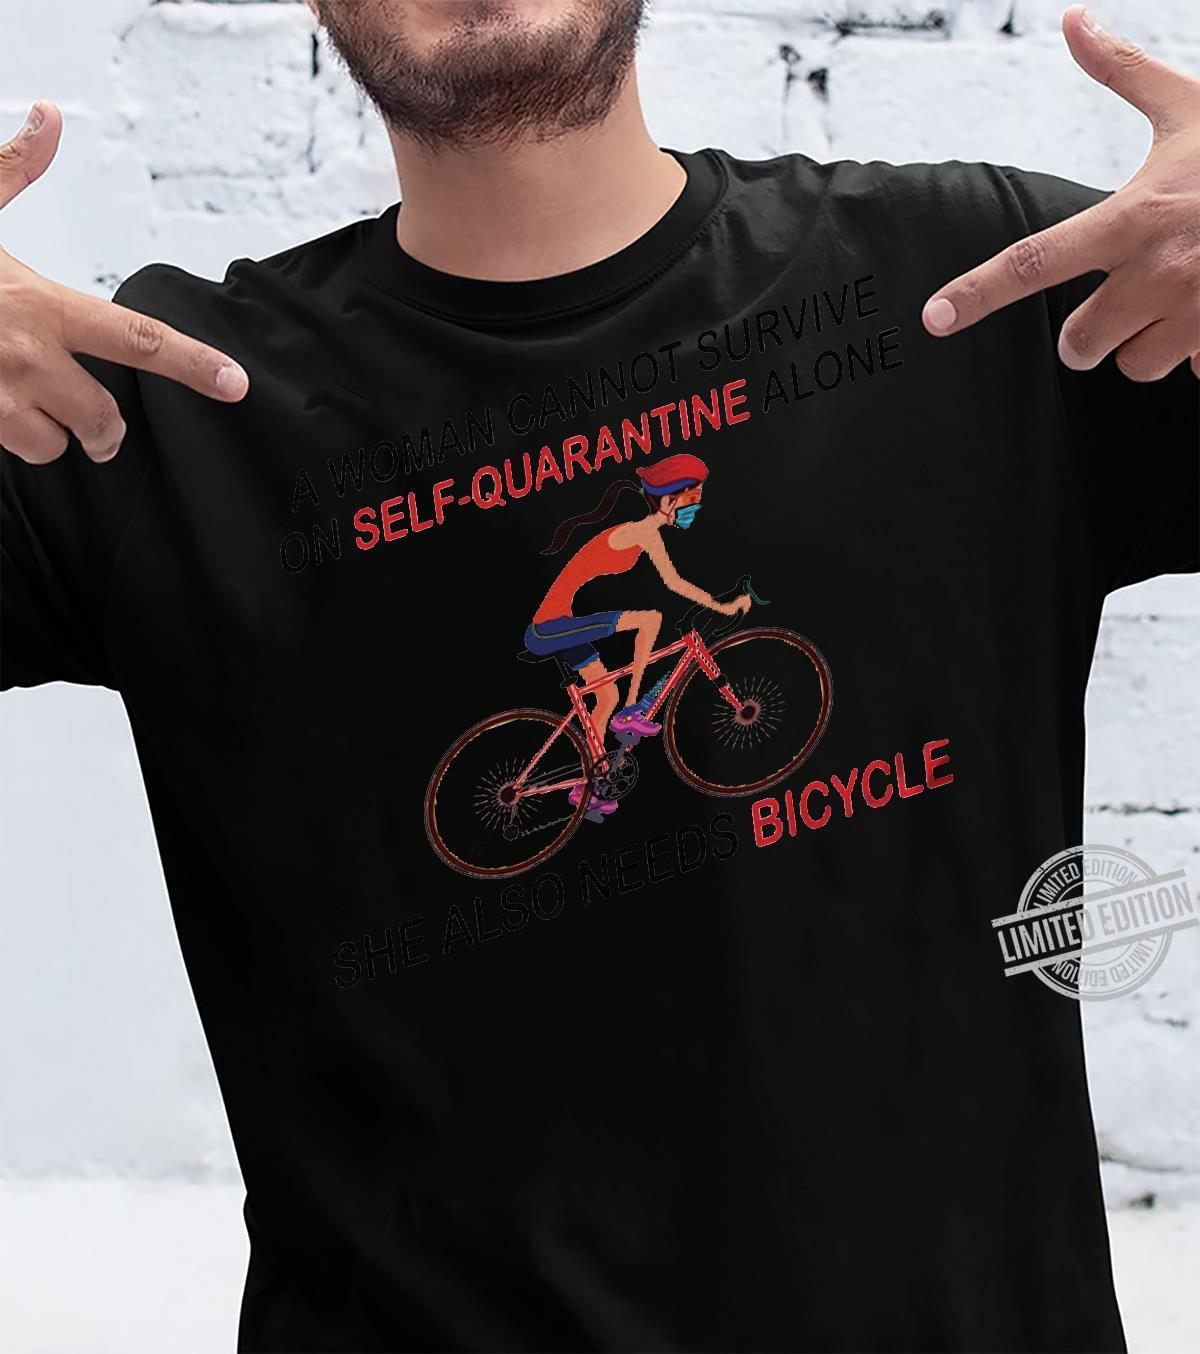 A Woman Cannot Survive On SElf Quarantine Alone She Also Needs Bicycle Shirt unisex